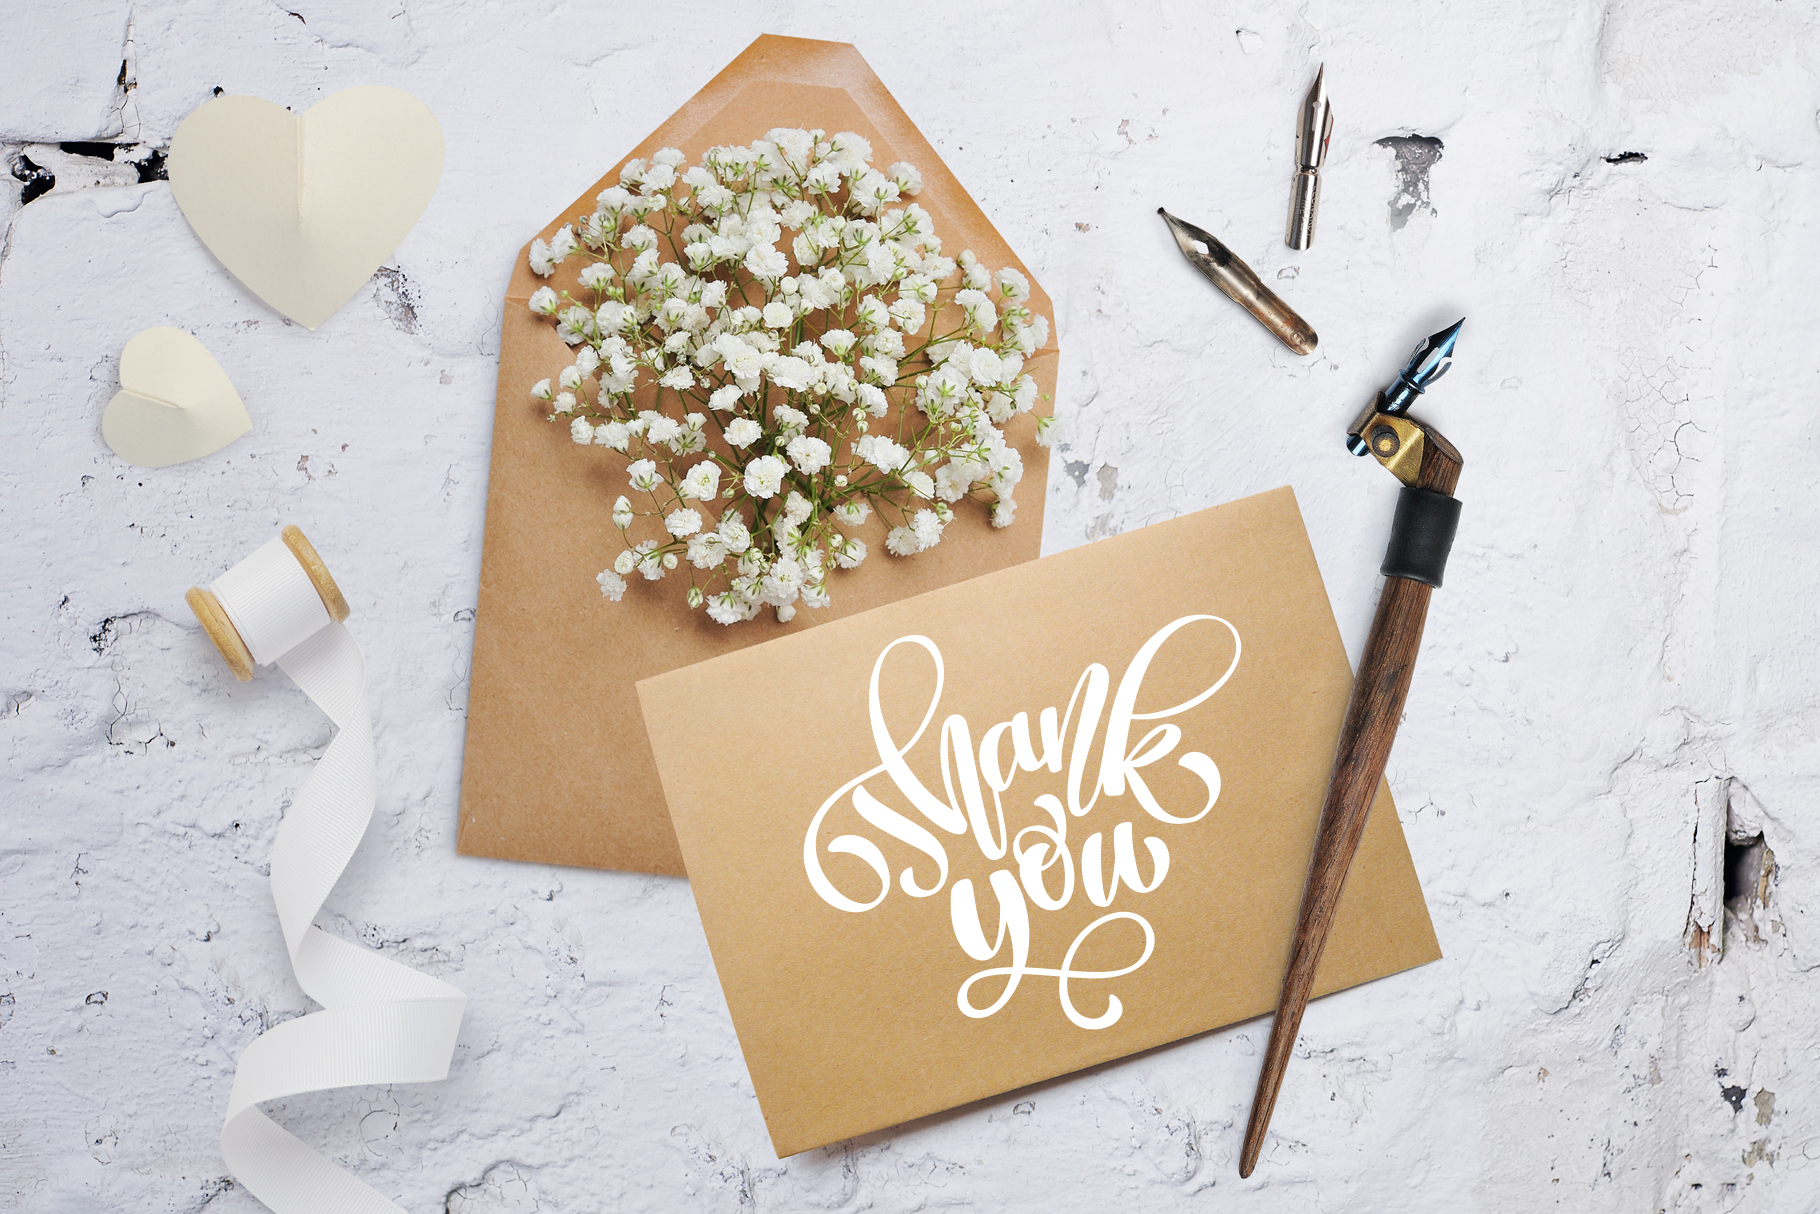 Valentines Day PSD Layered Scene Graphic Product Mockups By Happy Letters - Image 5